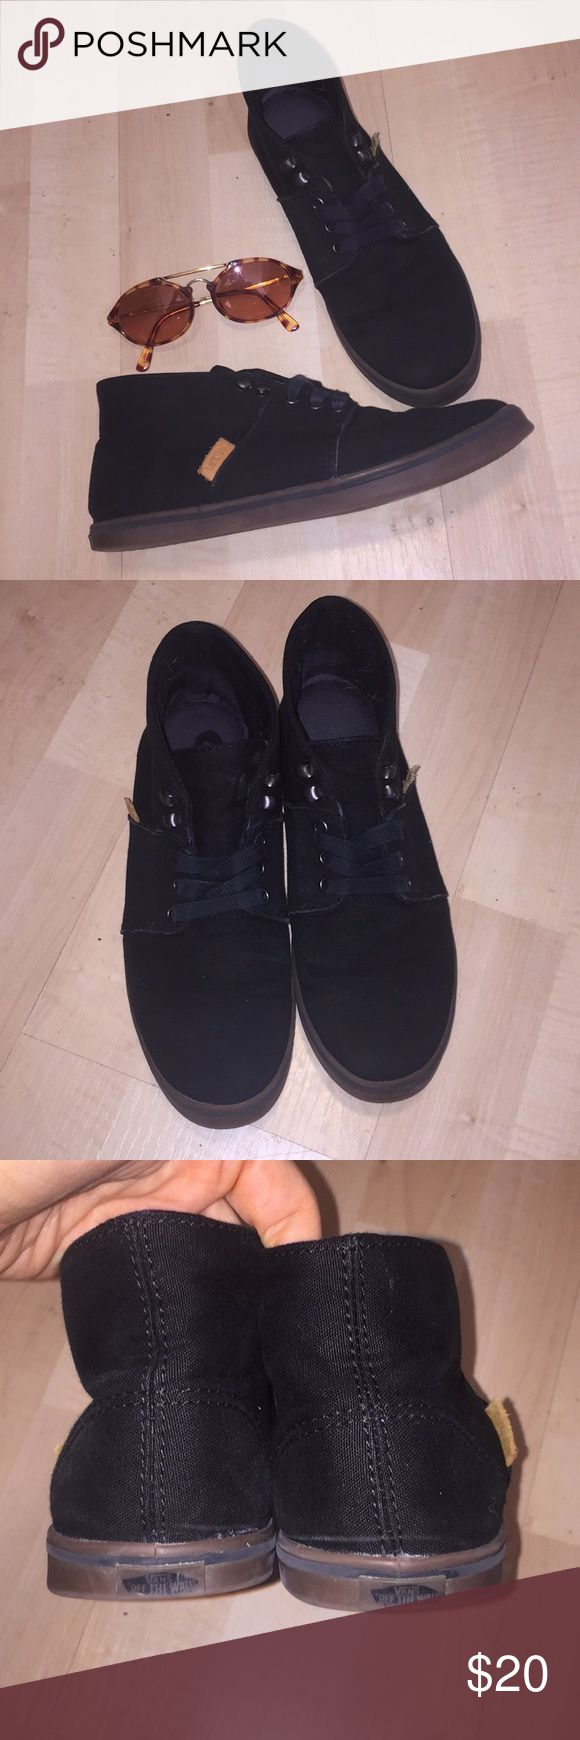 Vans Mid-rise Sneakers All black canvas vans. Not quite low or high.. sort of mid-rise. Leather Vans tags and gum colored soles. Inside sole needs a little shoe goo, or could go without.. doesn't look separated unless you pull it. Size 7. Vans Shoes Sneakers